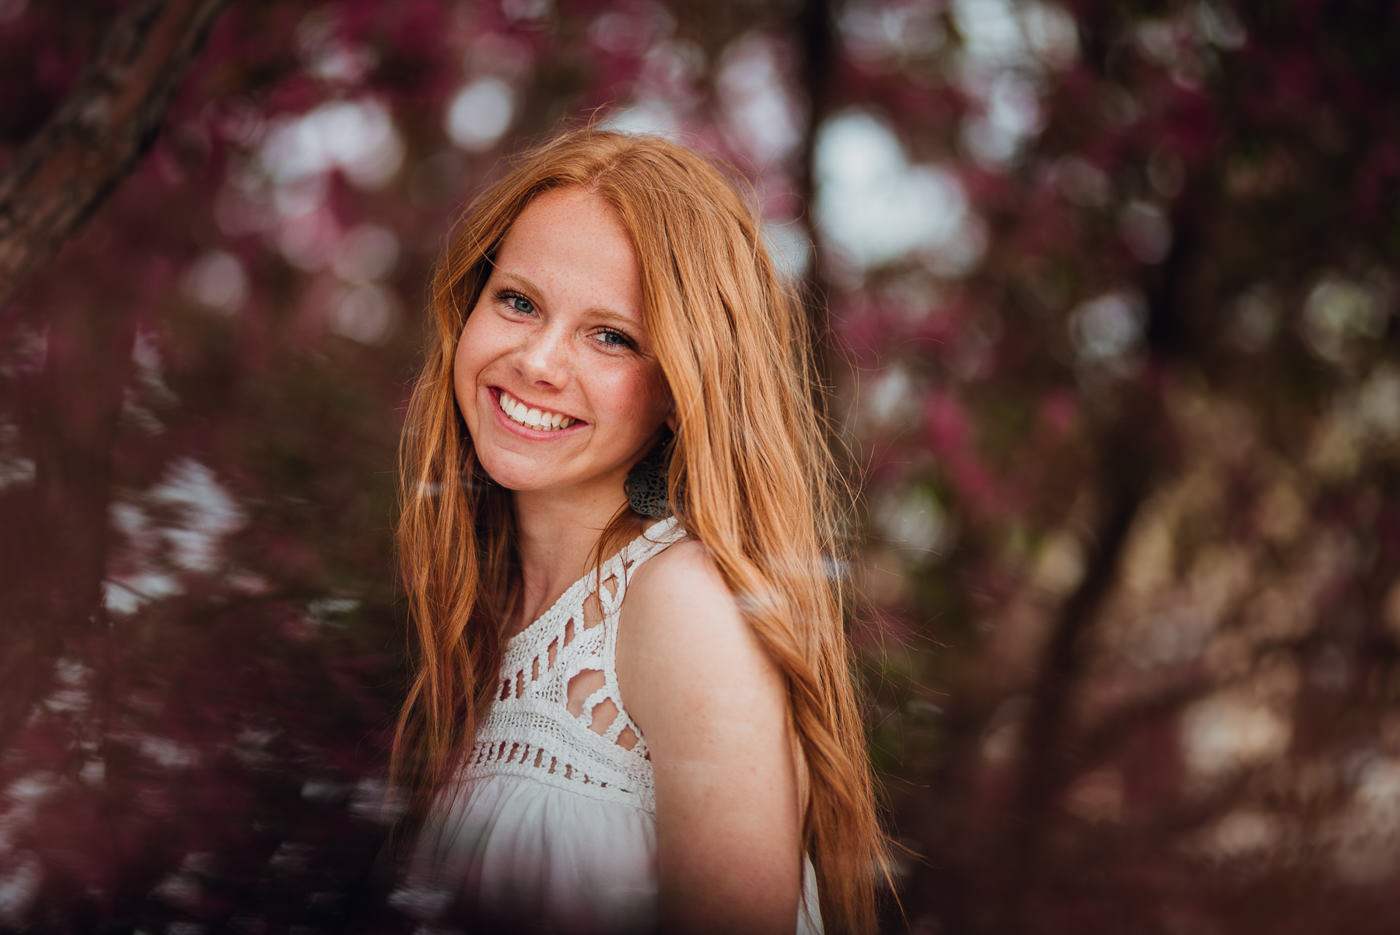 PHOCO Fort Collins Senior Portraits Spring Red Hair Cute-3.jpg